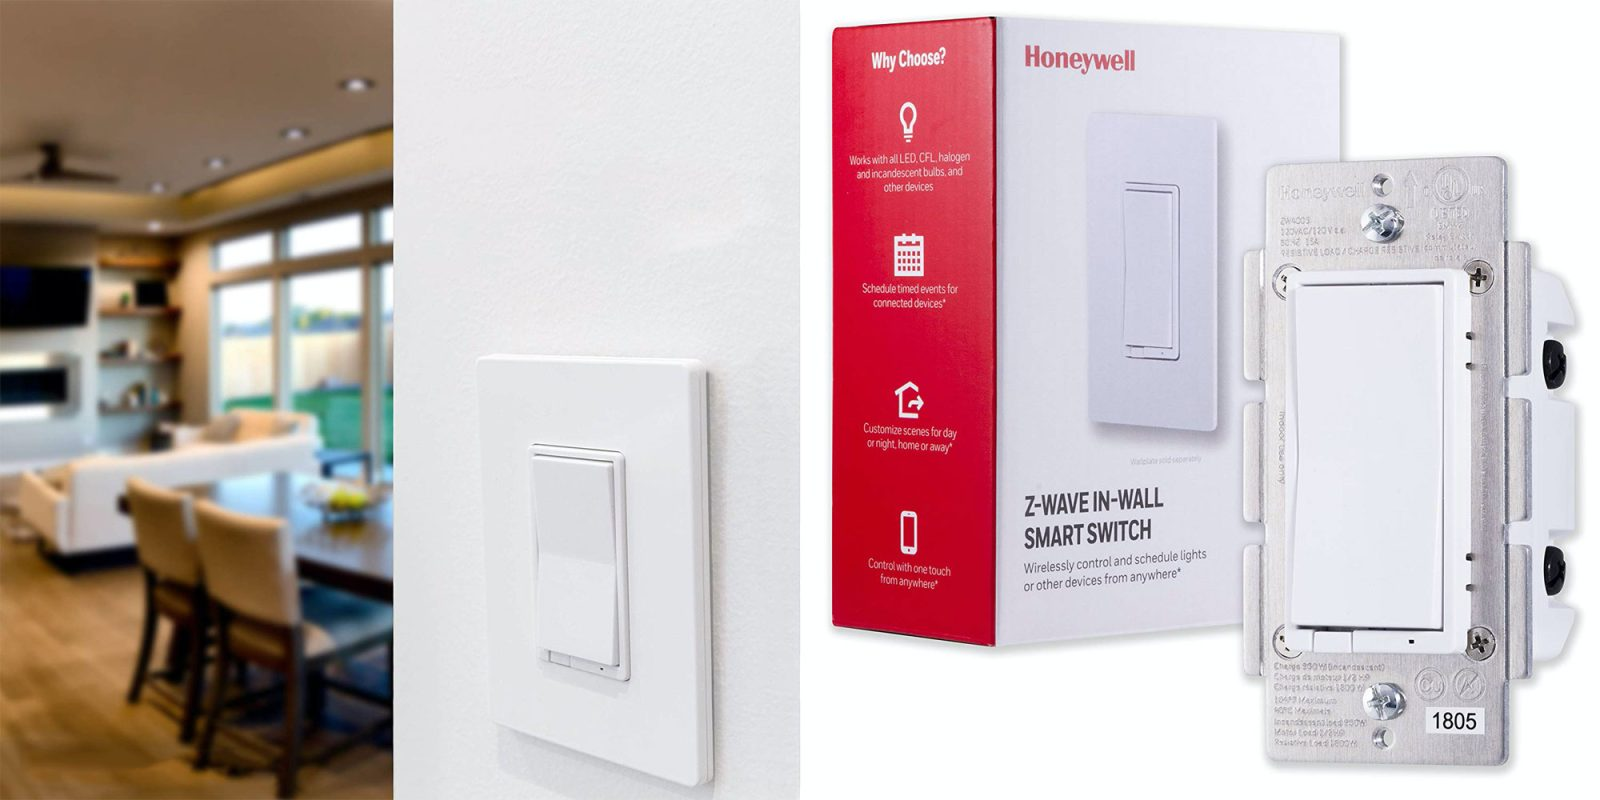 Make your home's lighting smart with Honeywell's Z-Wave Plus switch for $25